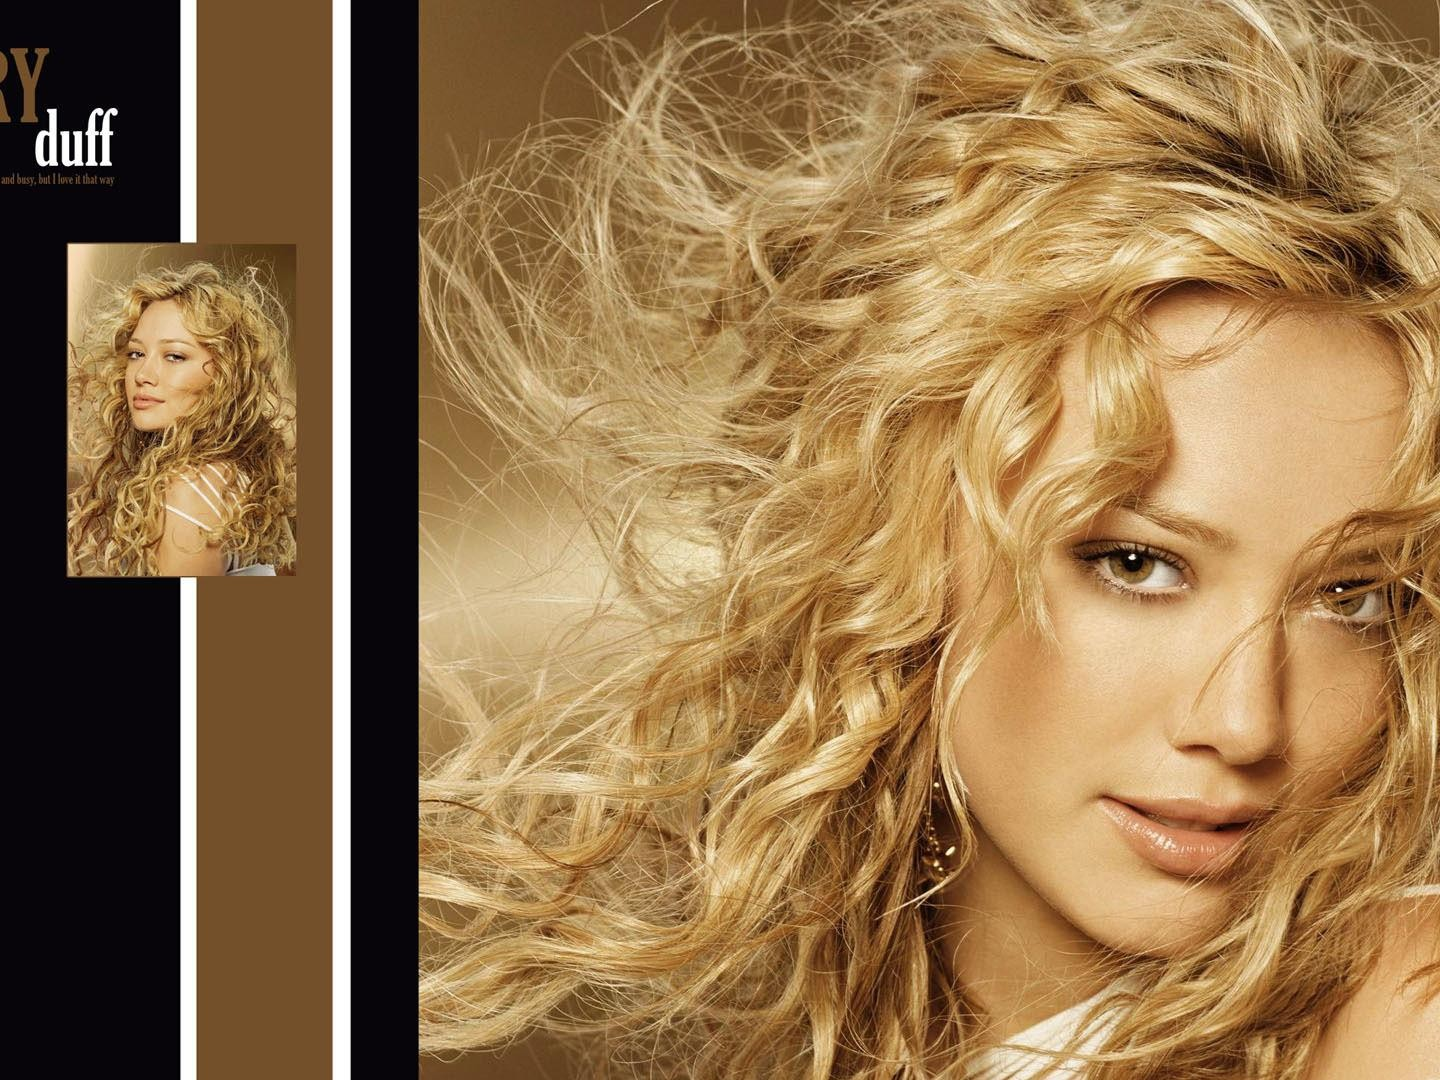 Hilary Duff with curly hair